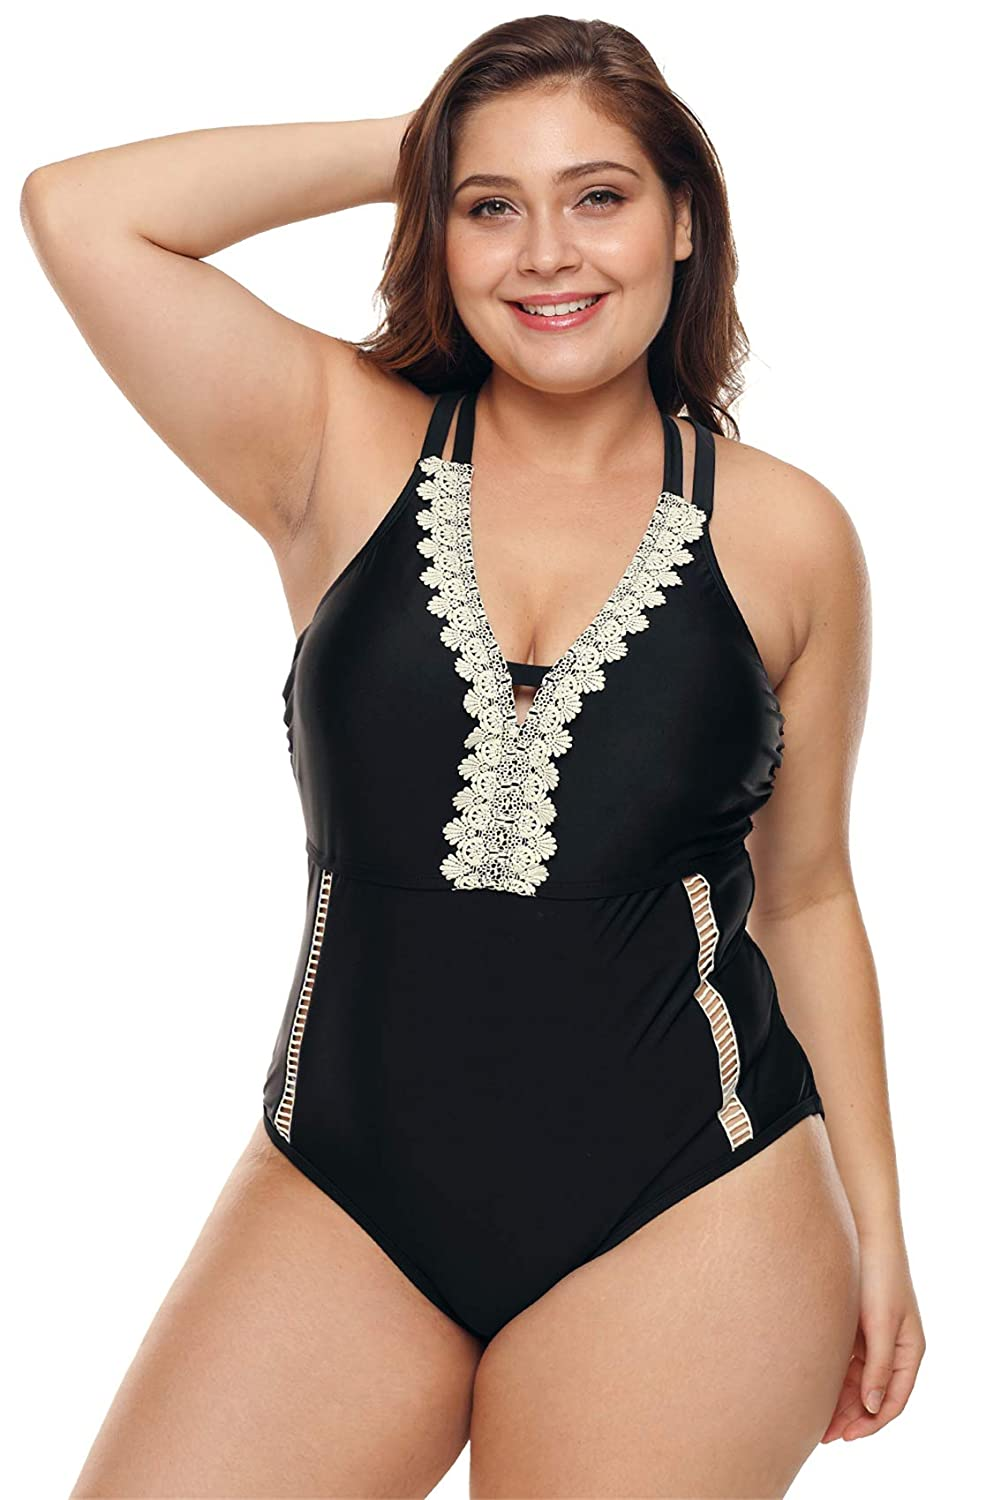 73b00ca5184c1 One Piece Strappy Back Ladder Cut Out Side Deep V Neck Lace Spliced Padded  Swimsuit Monokini Black White at Amazon Women s Clothing store